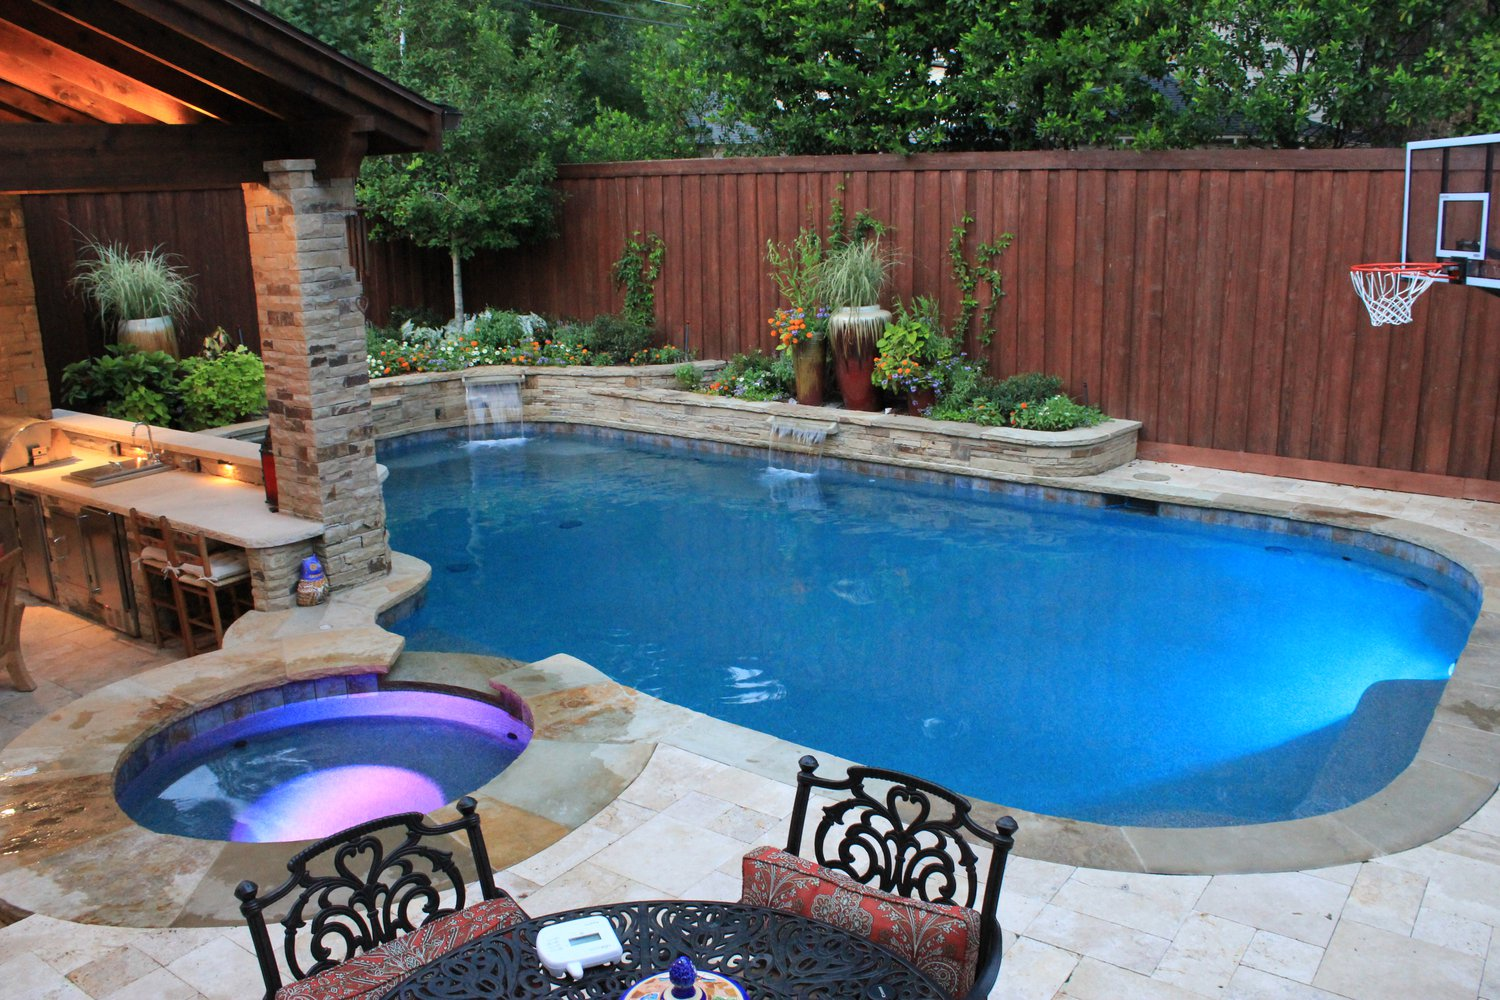 Remodel Your Pool Or Build A New Pool Today For Maximum ...